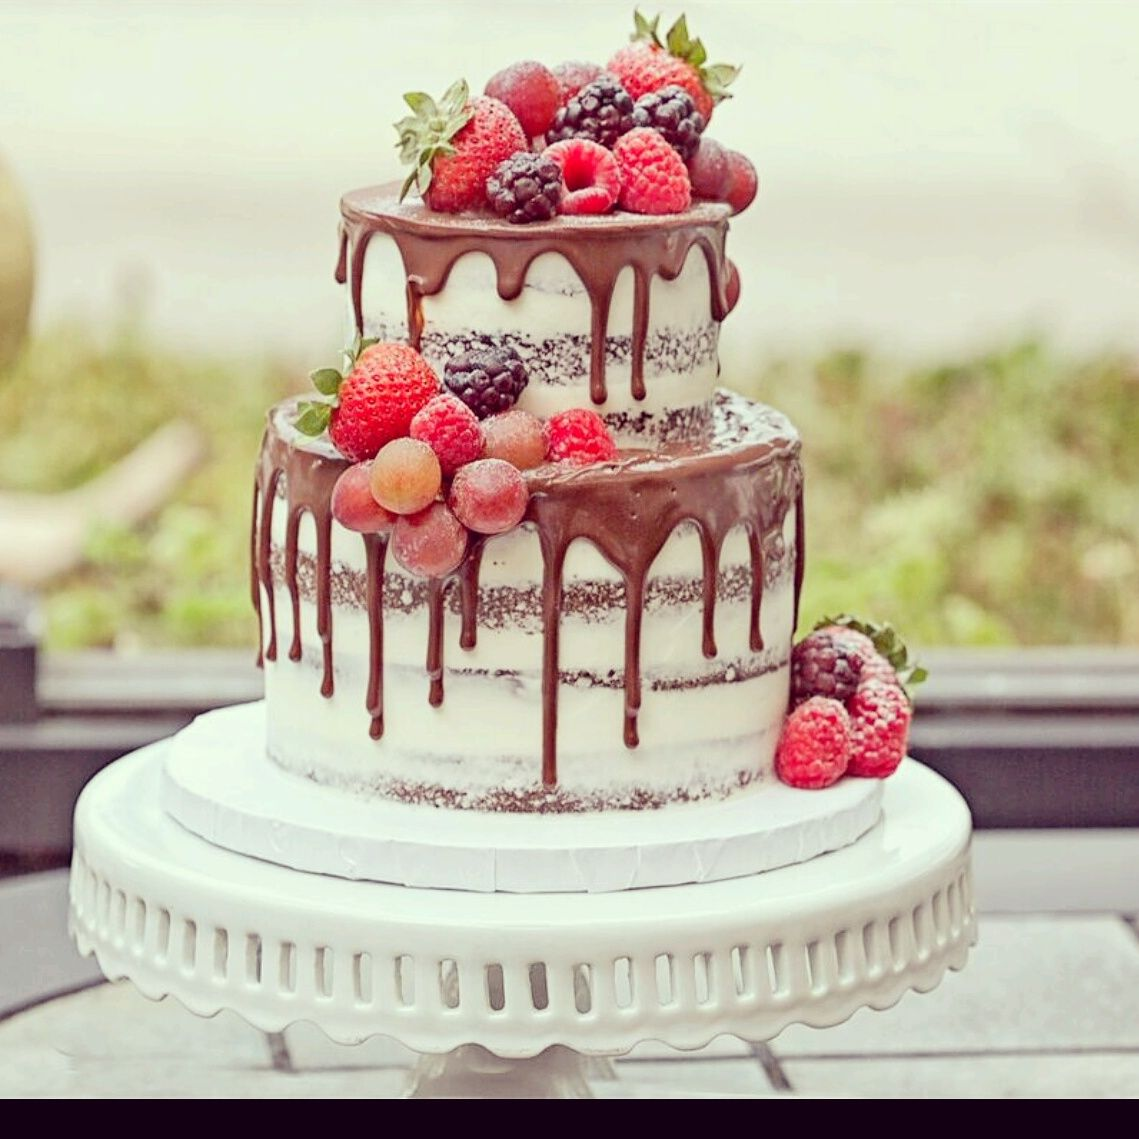 Kuchen Deko Düsseldorf Naked Cake With Chocolate Drip Entertaining Fabulous Cakes 2